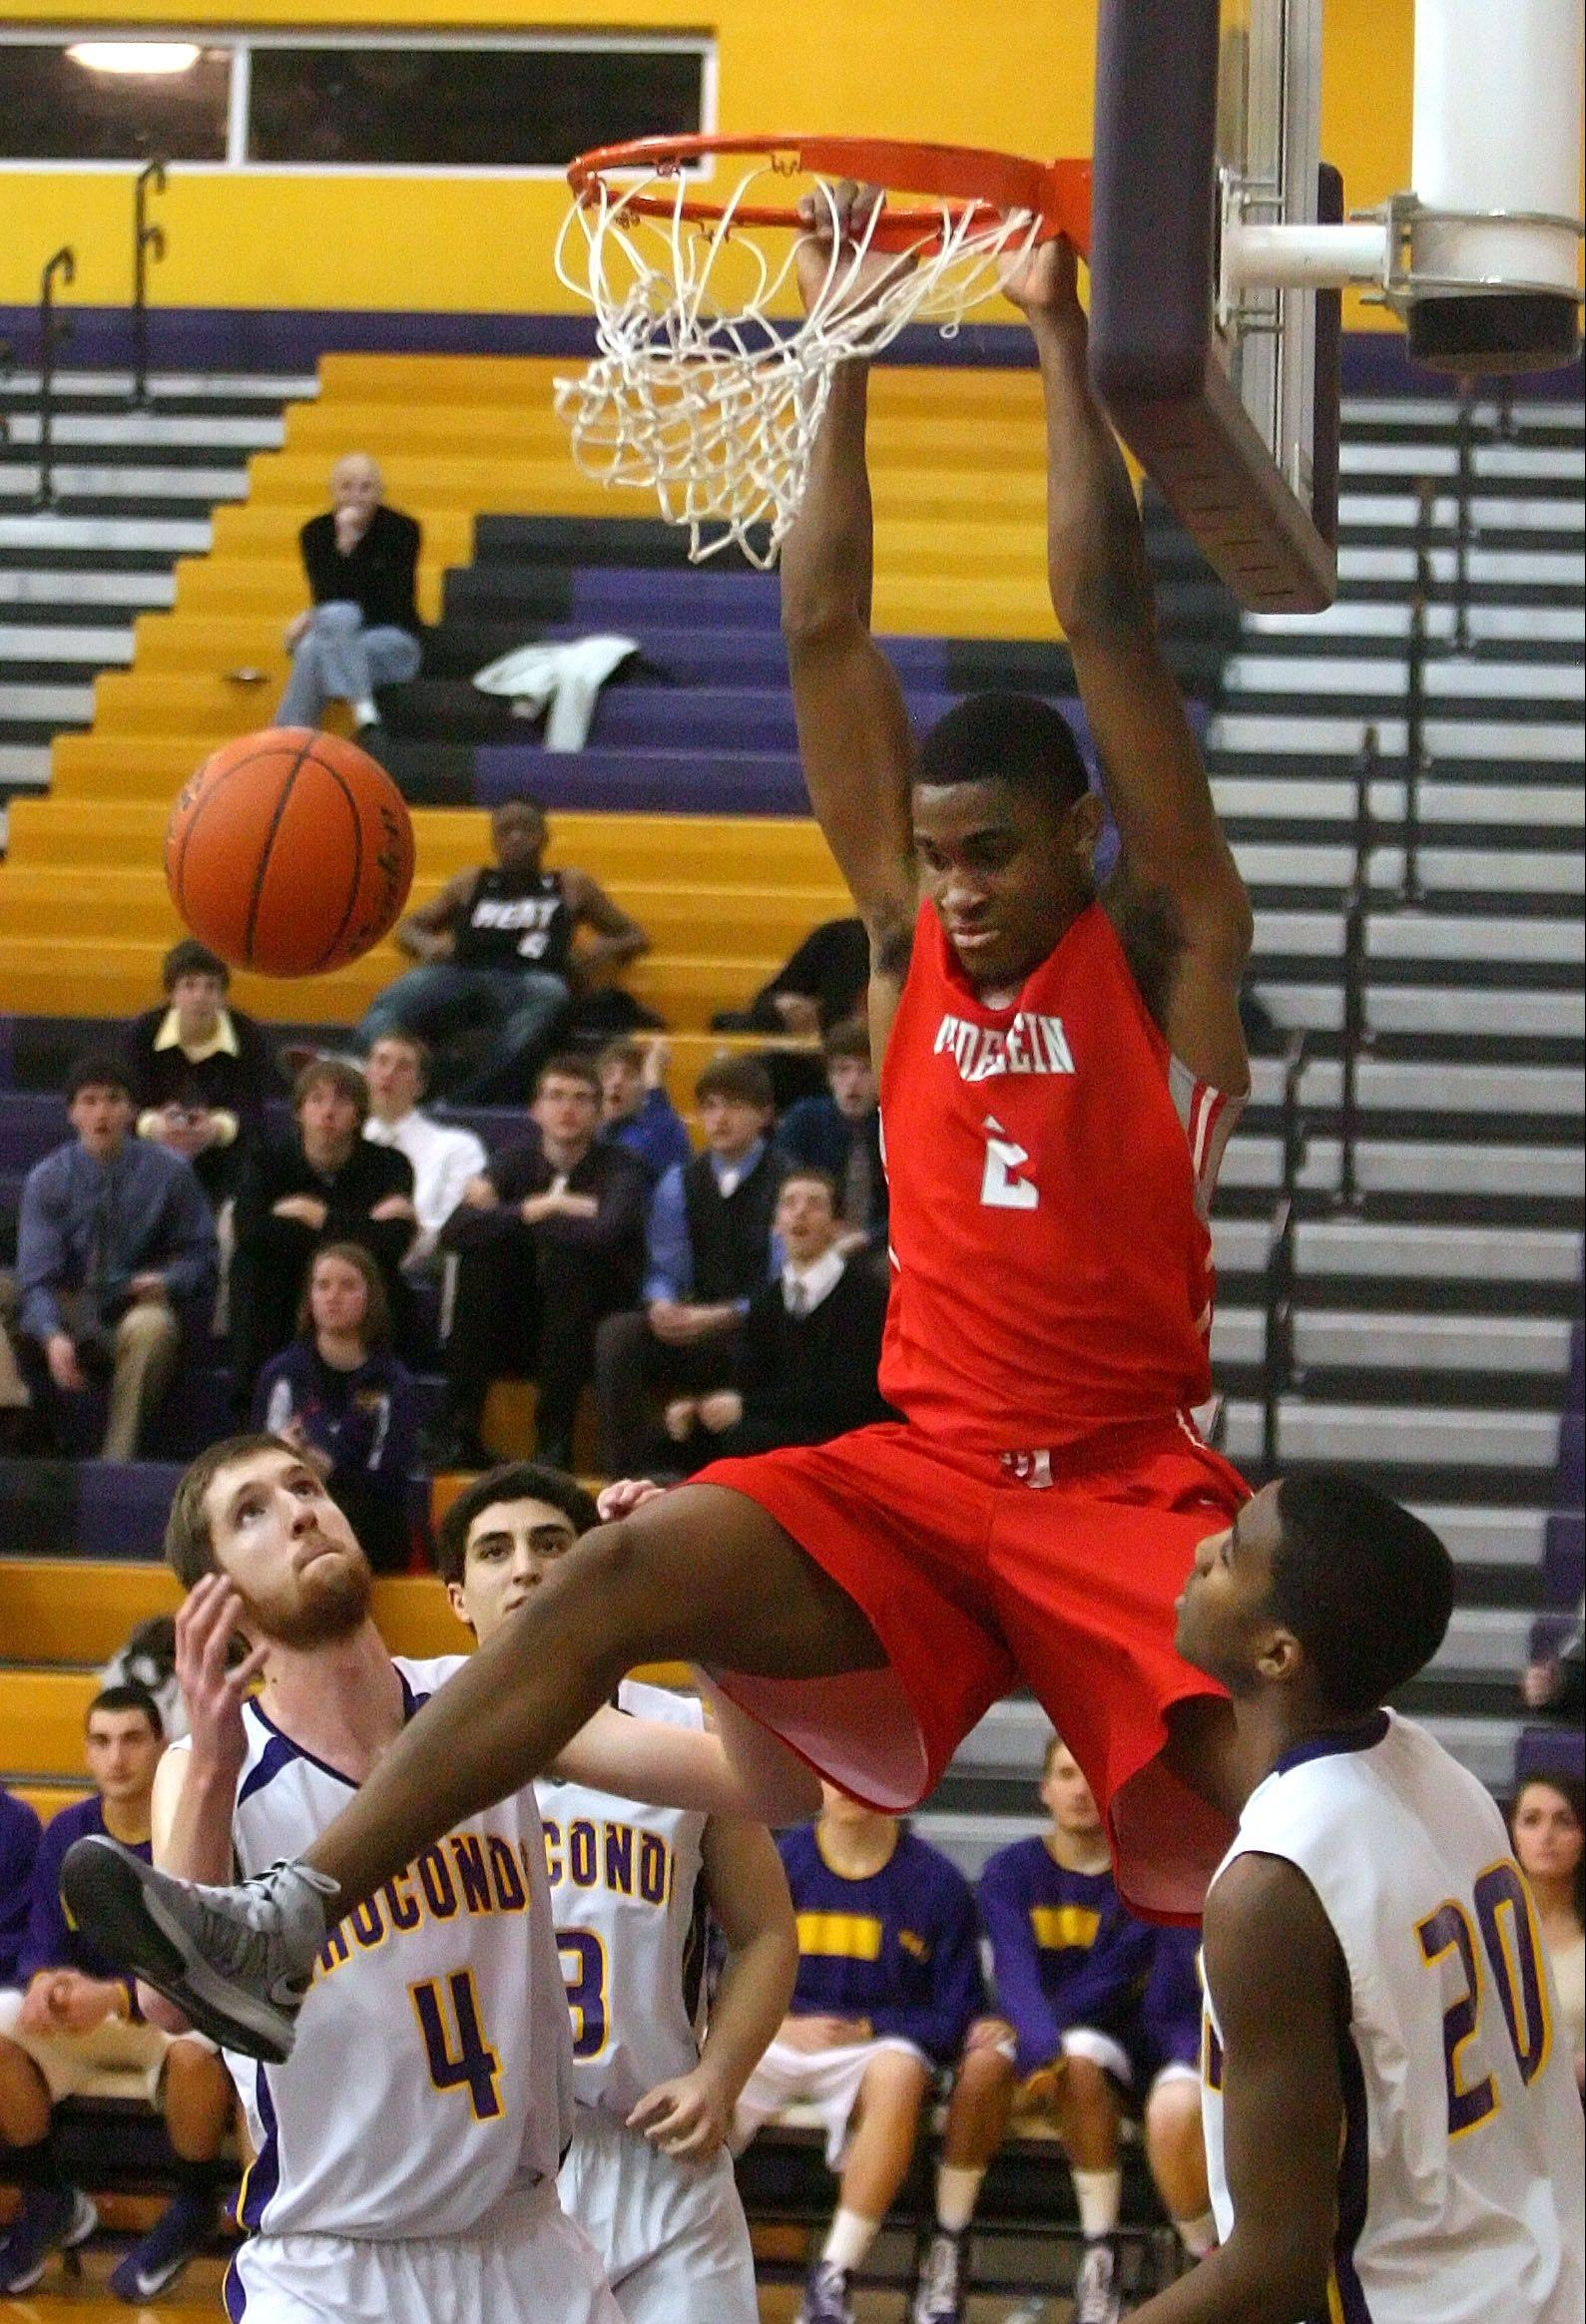 Mundelein's Chino Ebube goes in for an alley-oop dunk over Wauconda's Ricky Sidlowski, left, and Devon King on Wednesday night at Wauconda.